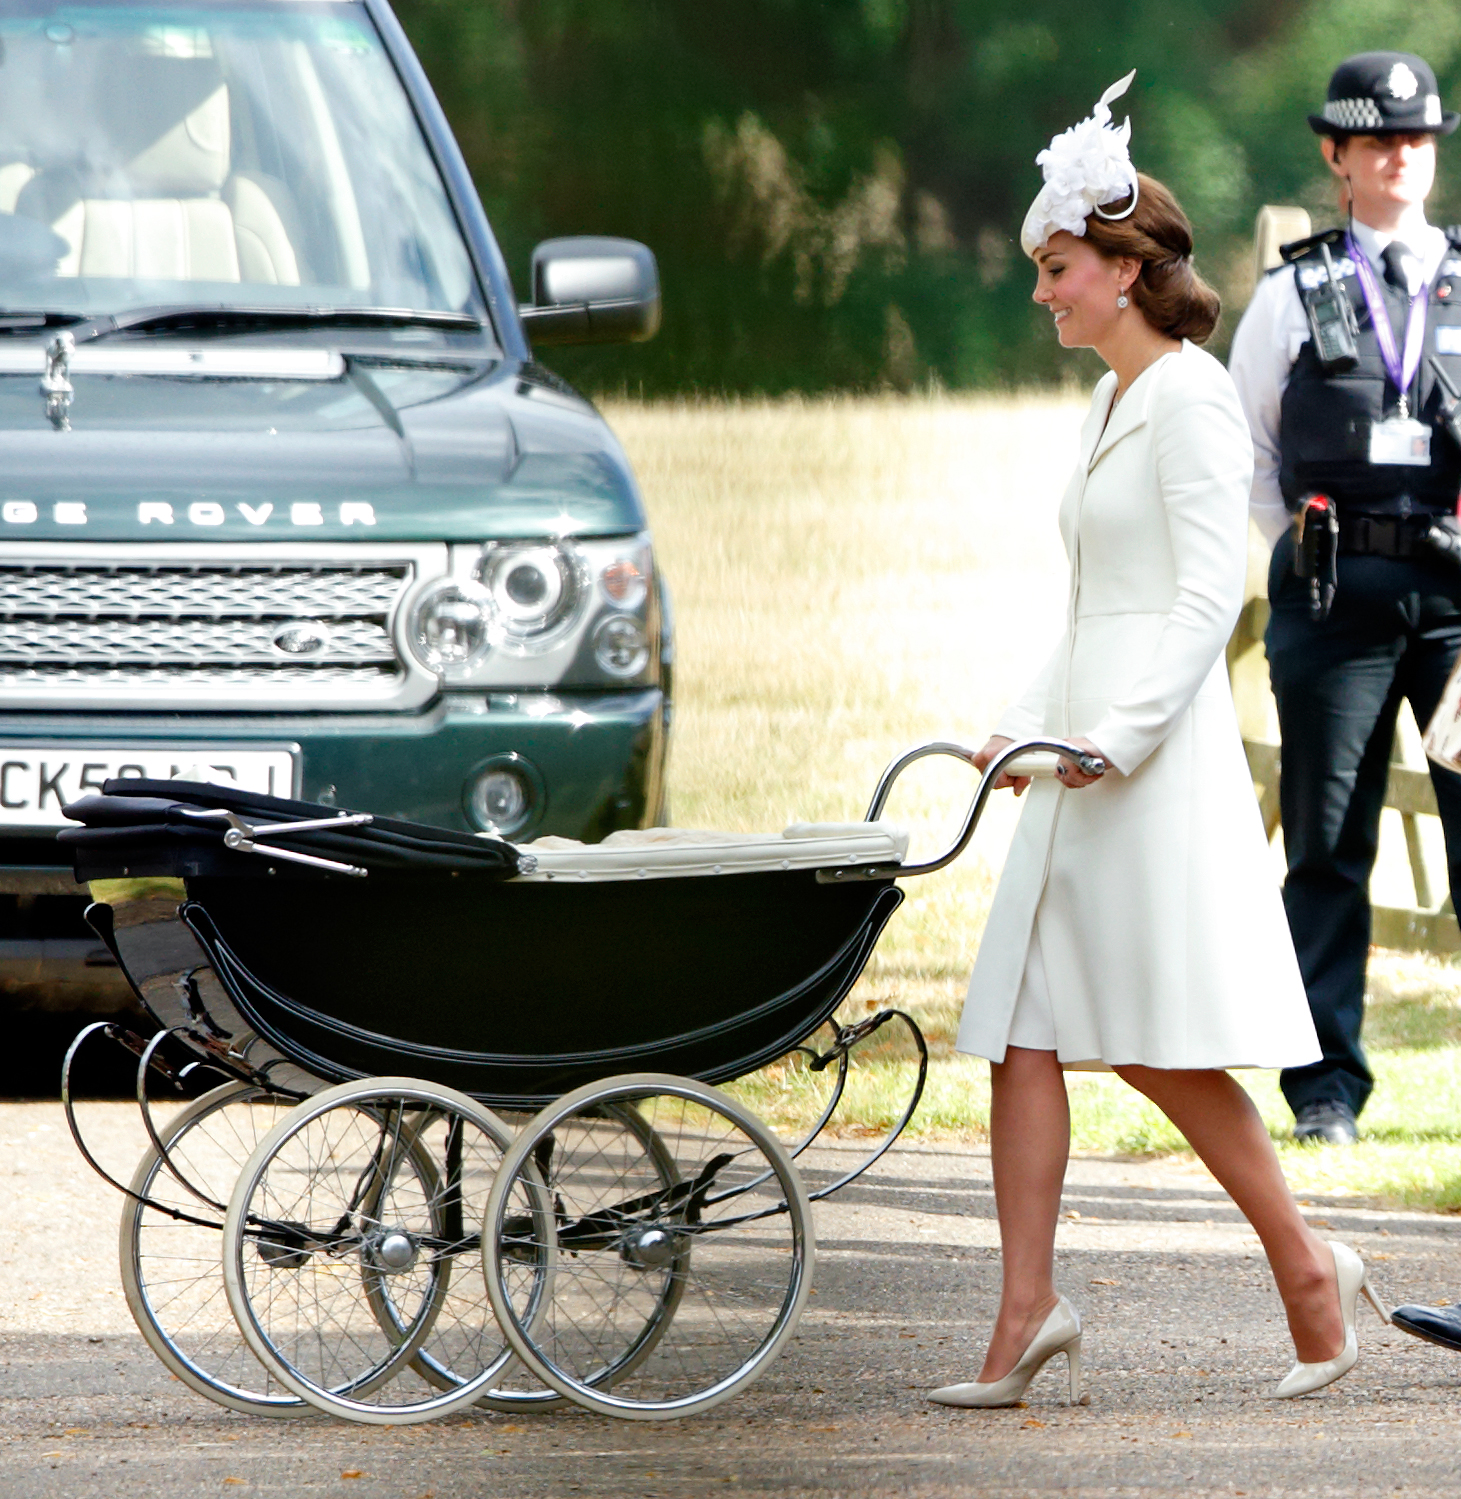 KING'S LYNN, UNITED KINGDOM - JULY 05: (EMBARGOED FOR PUBLICATION IN UK NEWSPAPERS UNTIL 48 HOURS AFTER CREATE DATE AND TIME) Catherine, Duchess of Cambridge pushes daughter Princess Charlotte of Cambridge in her pram as she attends the christening of Princess Charlotte of Cambridge at the church of St Mary Magdalene on the Sandringham Estate on July 5, 2015 in King's Lynn, England. (Photo by Max Mumby/Indigo/Getty Images)